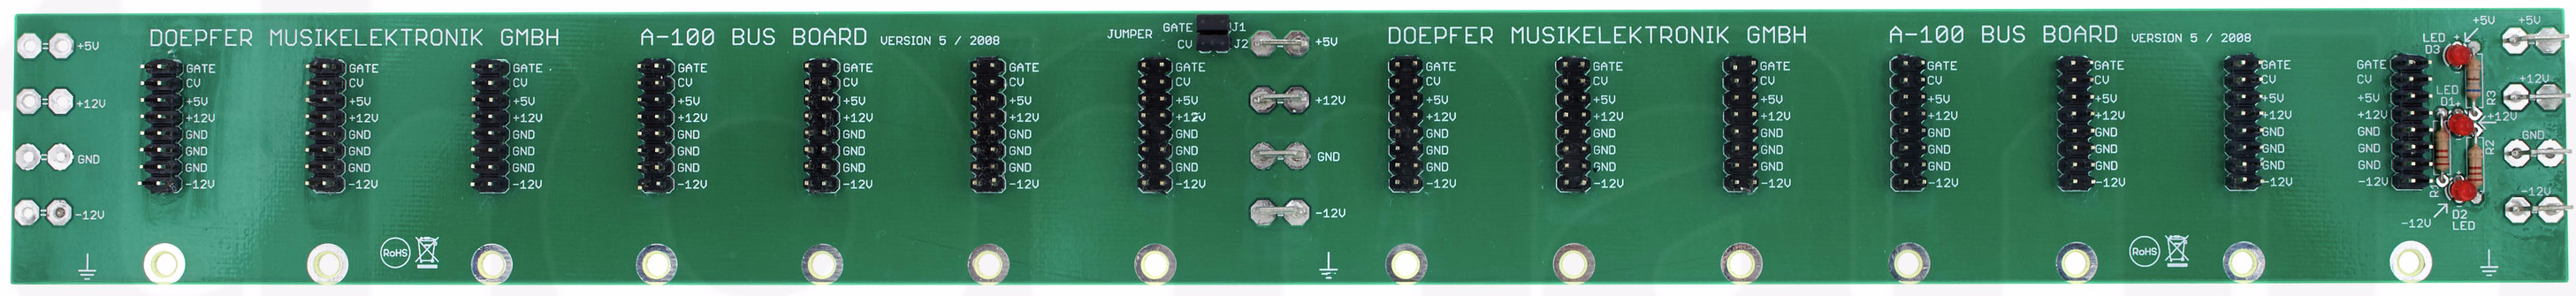 Frequency Central Microbus power PCB Doepfer DIY